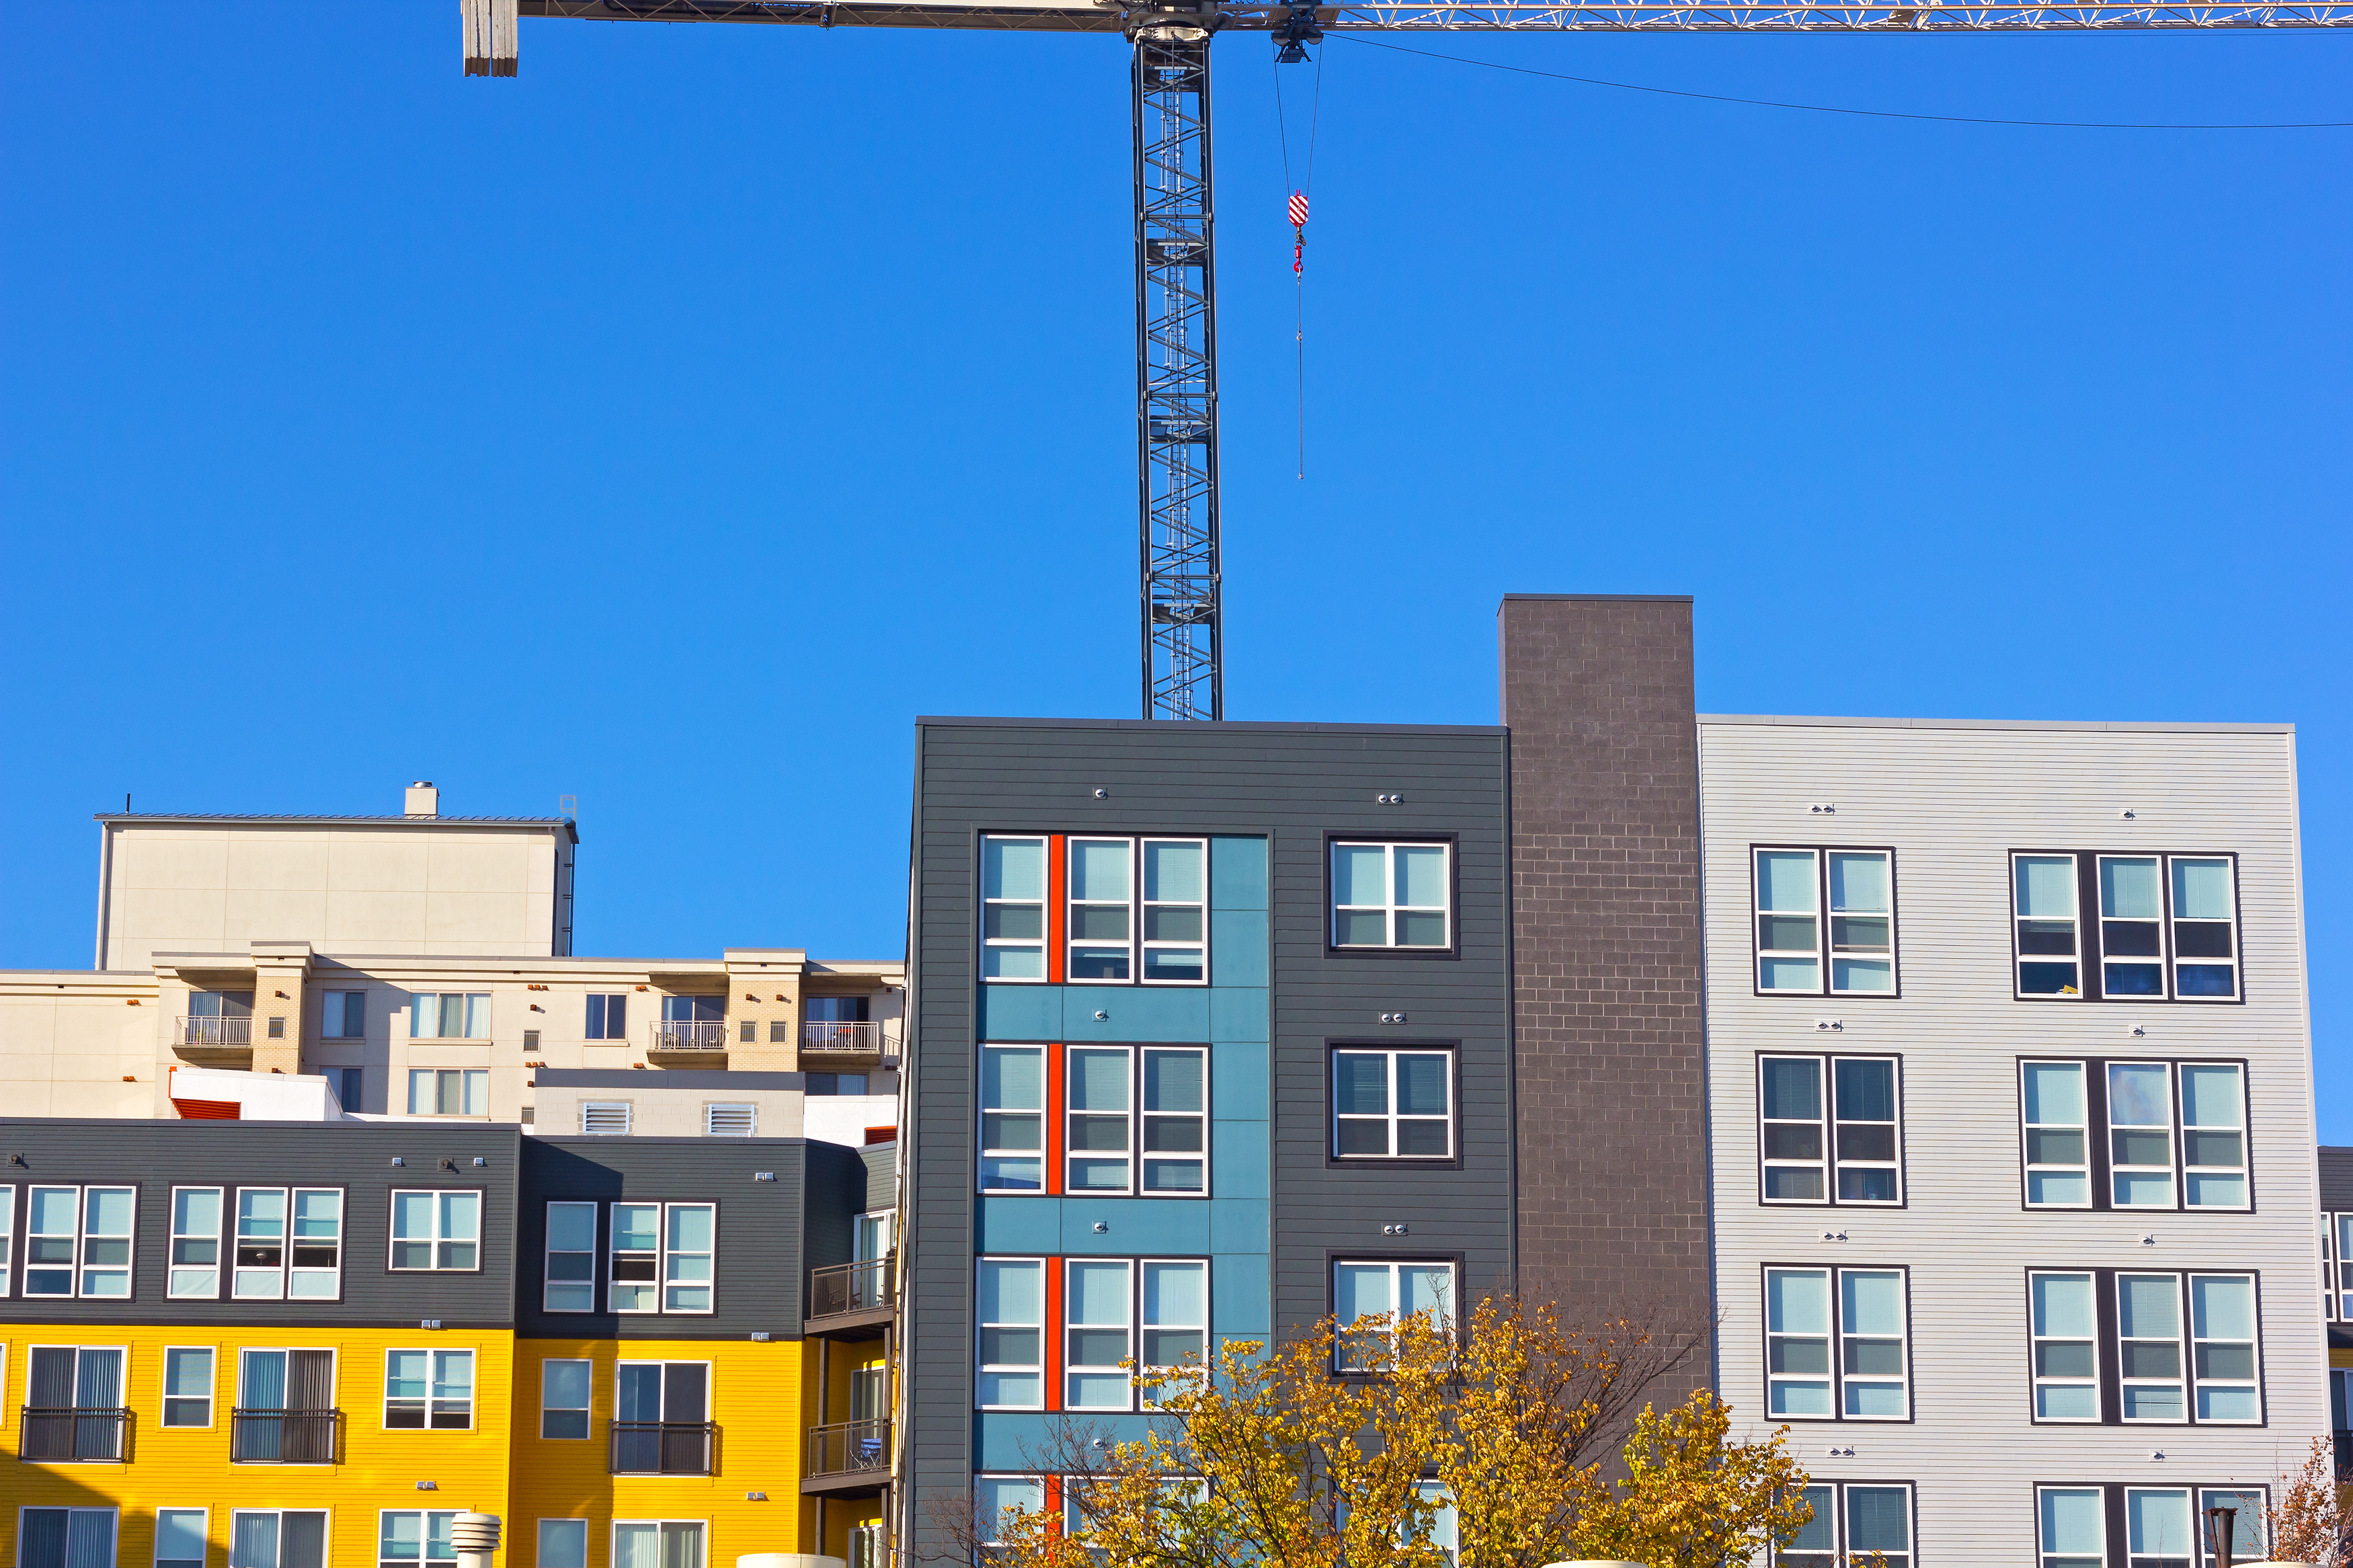 The top of modern residential buildings with a crane in the background.